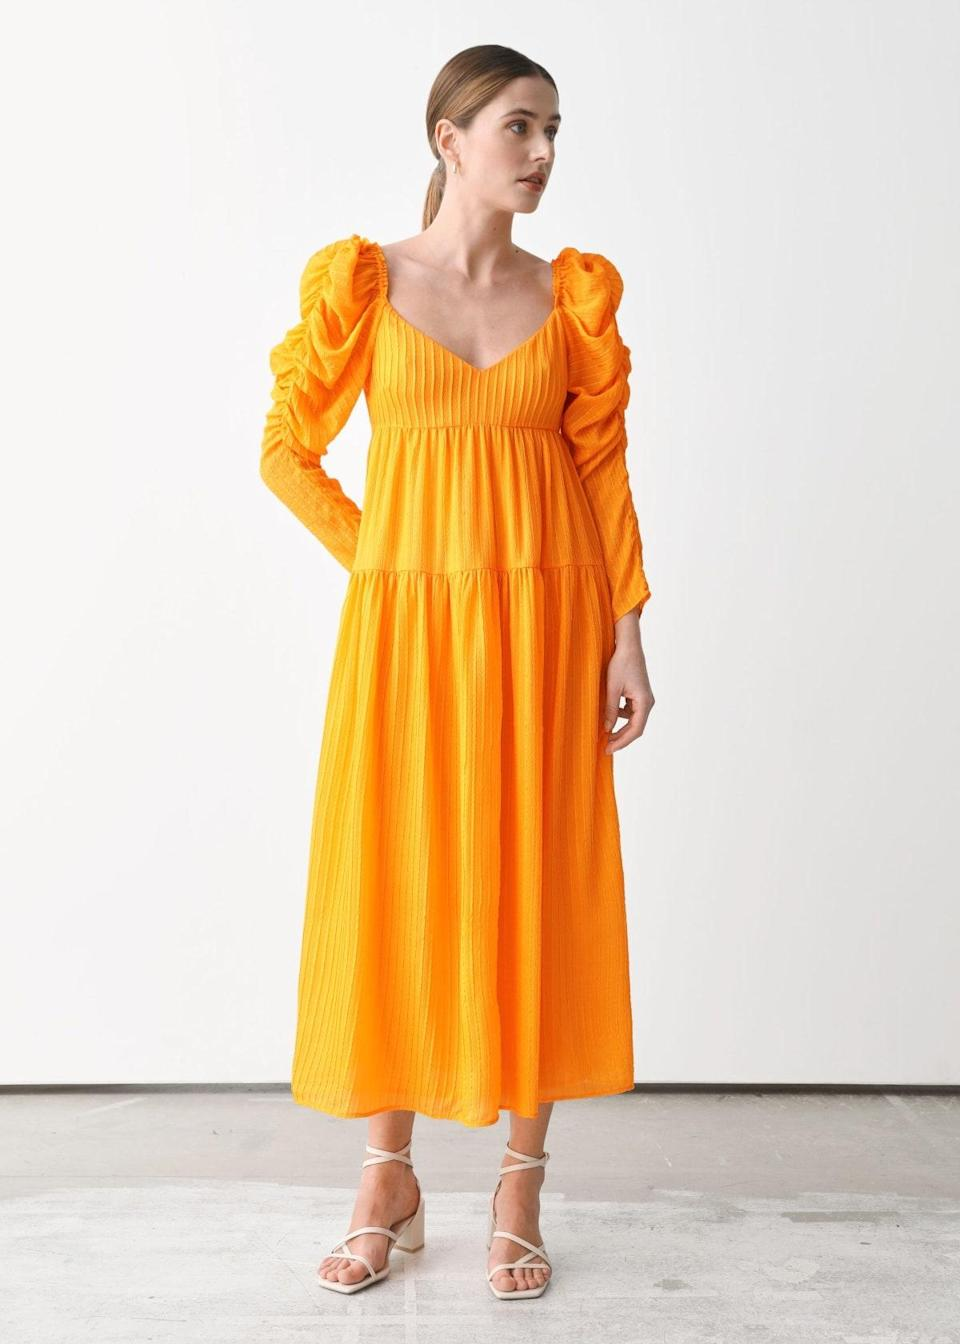 """Add some zest to the table in this puff-sleeve midi, which can work for an intimate brunch gathering or late lunch reception. Keep the vibes extra ~fresh~ with minimal accessories and an elegantly disheveled <a href=""""https://www.glamour.com/story/cord-knot-hairstyle?mbid=synd_yahoo_rss"""" rel=""""nofollow noopener"""" target=""""_blank"""" data-ylk=""""slk:cord knot bun"""" class=""""link rapid-noclick-resp"""">cord knot bun</a>. $249, & Other Stories. <a href=""""https://www.stories.com/en_usd/clothing/dresses/midi-dresses/product.mulberry-silk-puff-sleeve-midi-dress-yellow.0958620001.html"""" rel=""""nofollow noopener"""" target=""""_blank"""" data-ylk=""""slk:Get it now!"""" class=""""link rapid-noclick-resp"""">Get it now!</a>"""